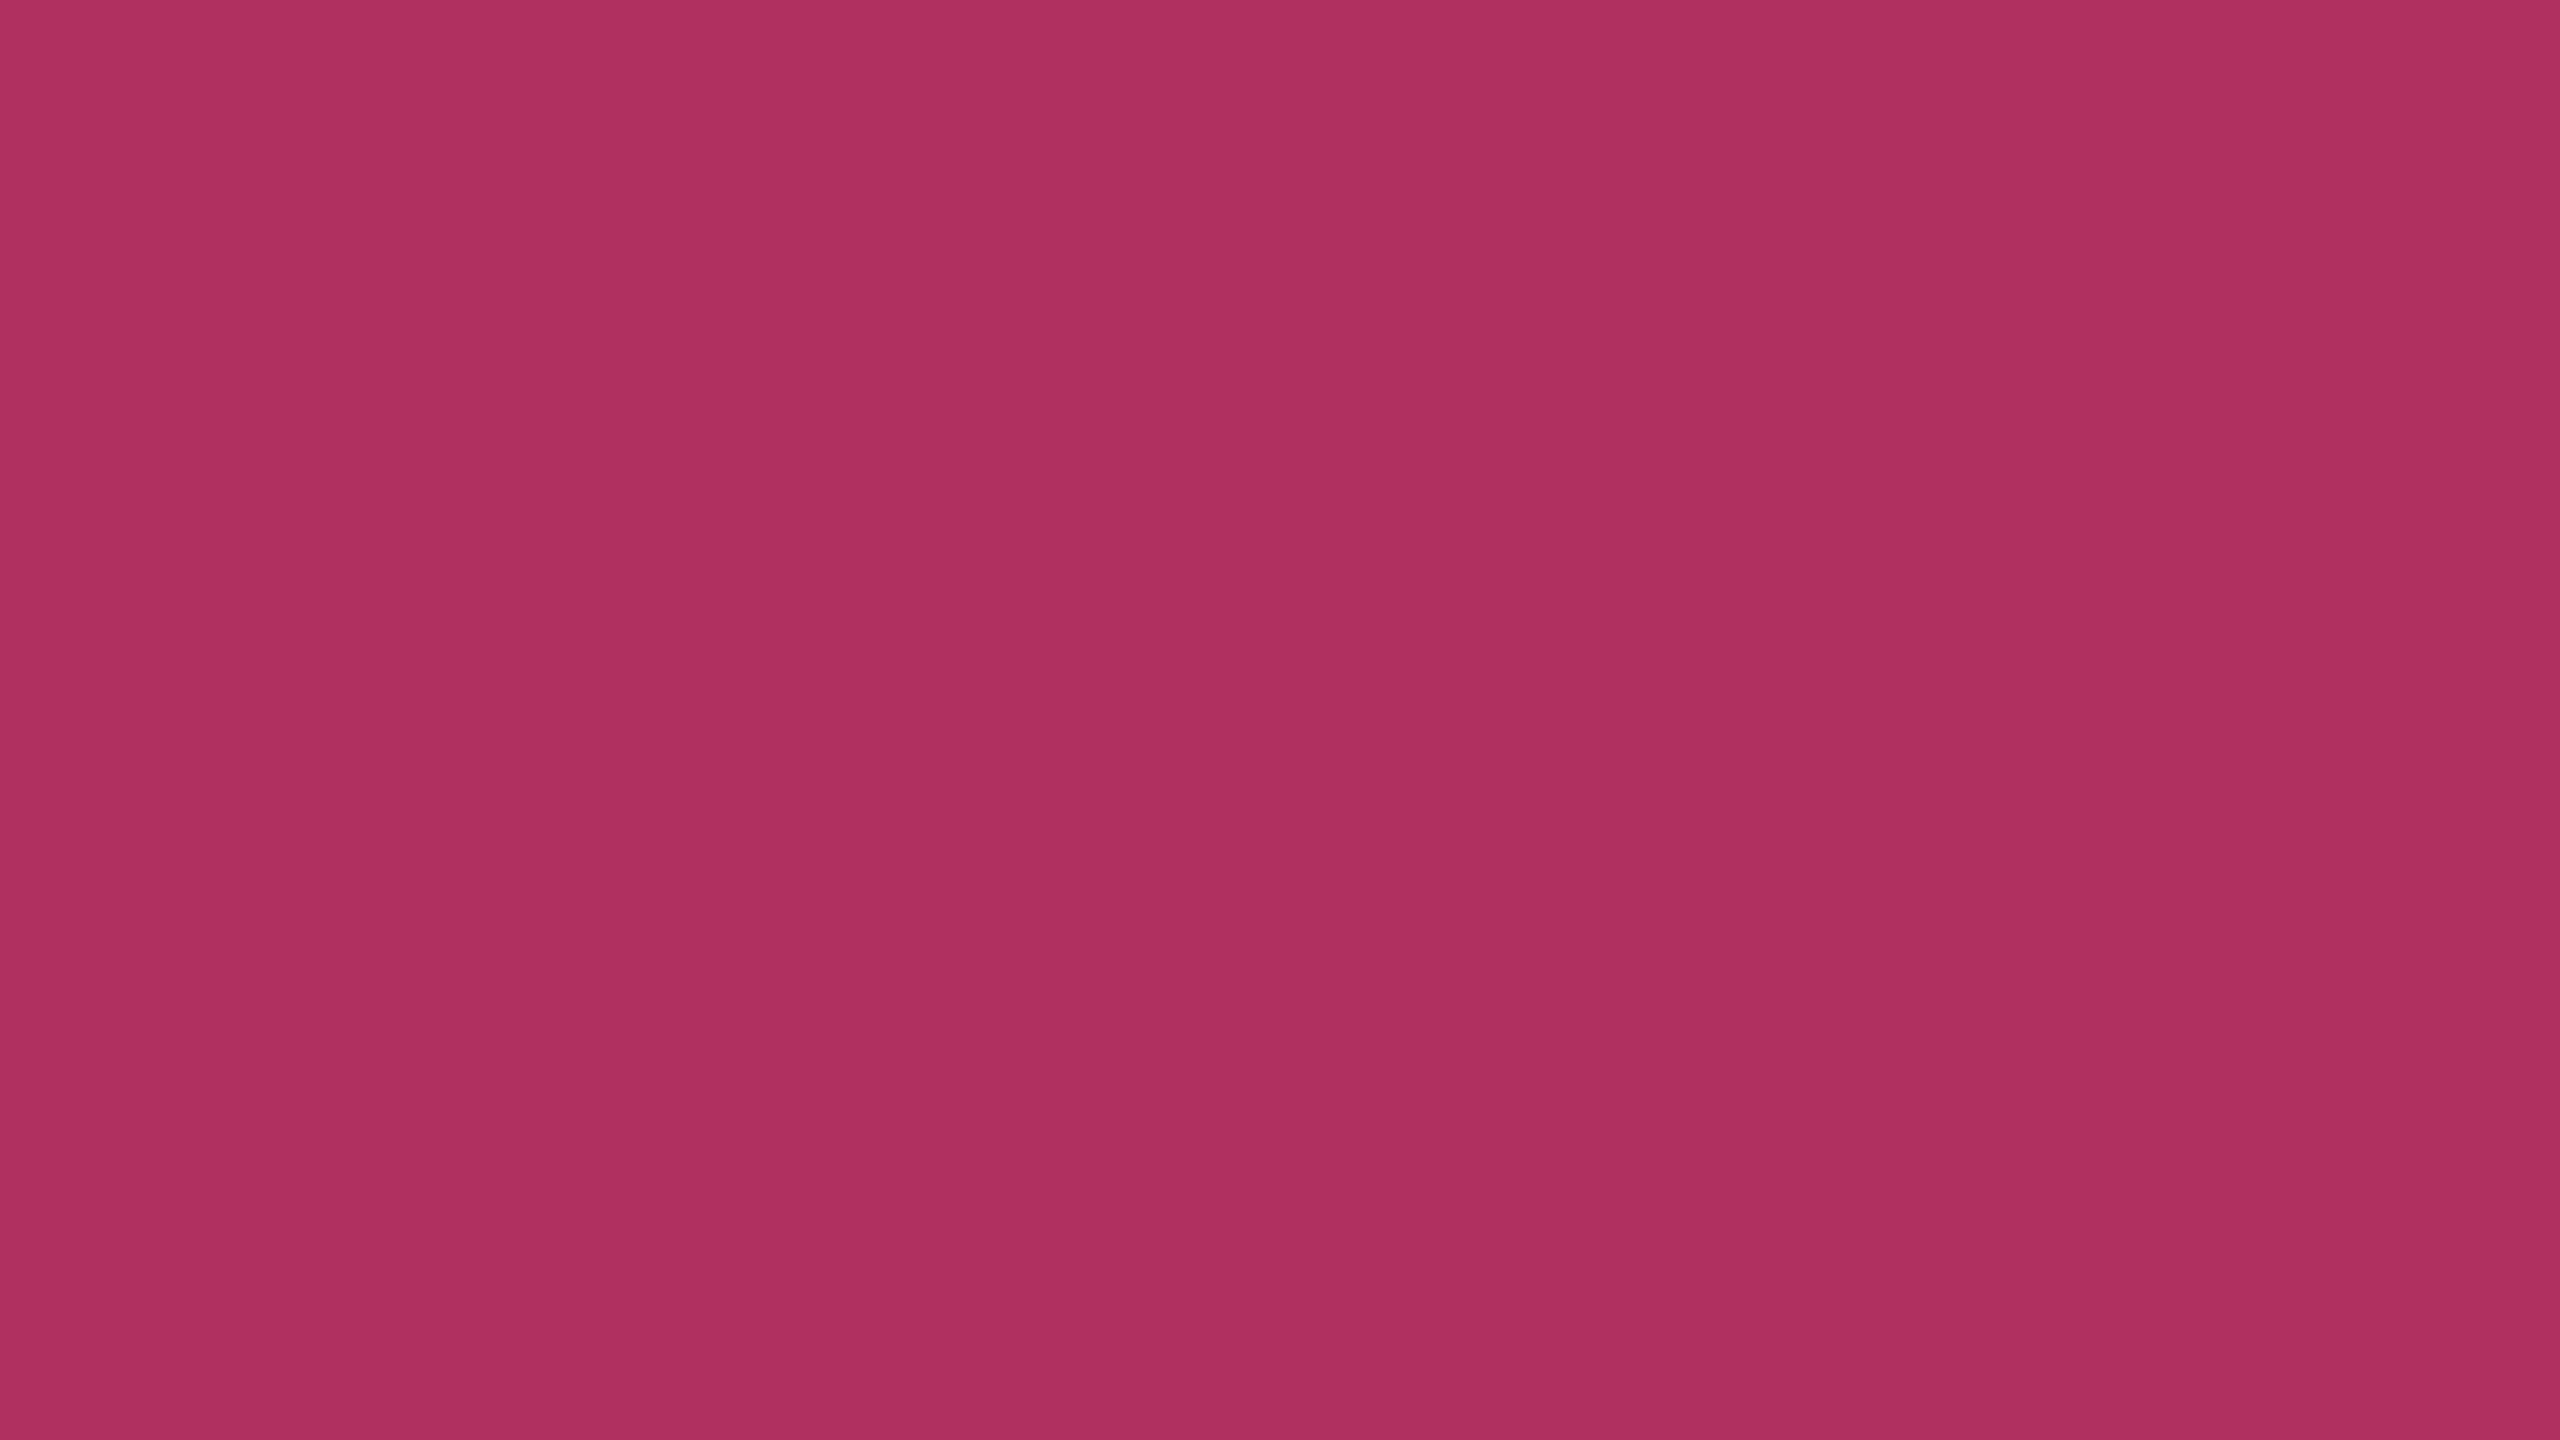 2560x1440 Rich Maroon Solid Color Background